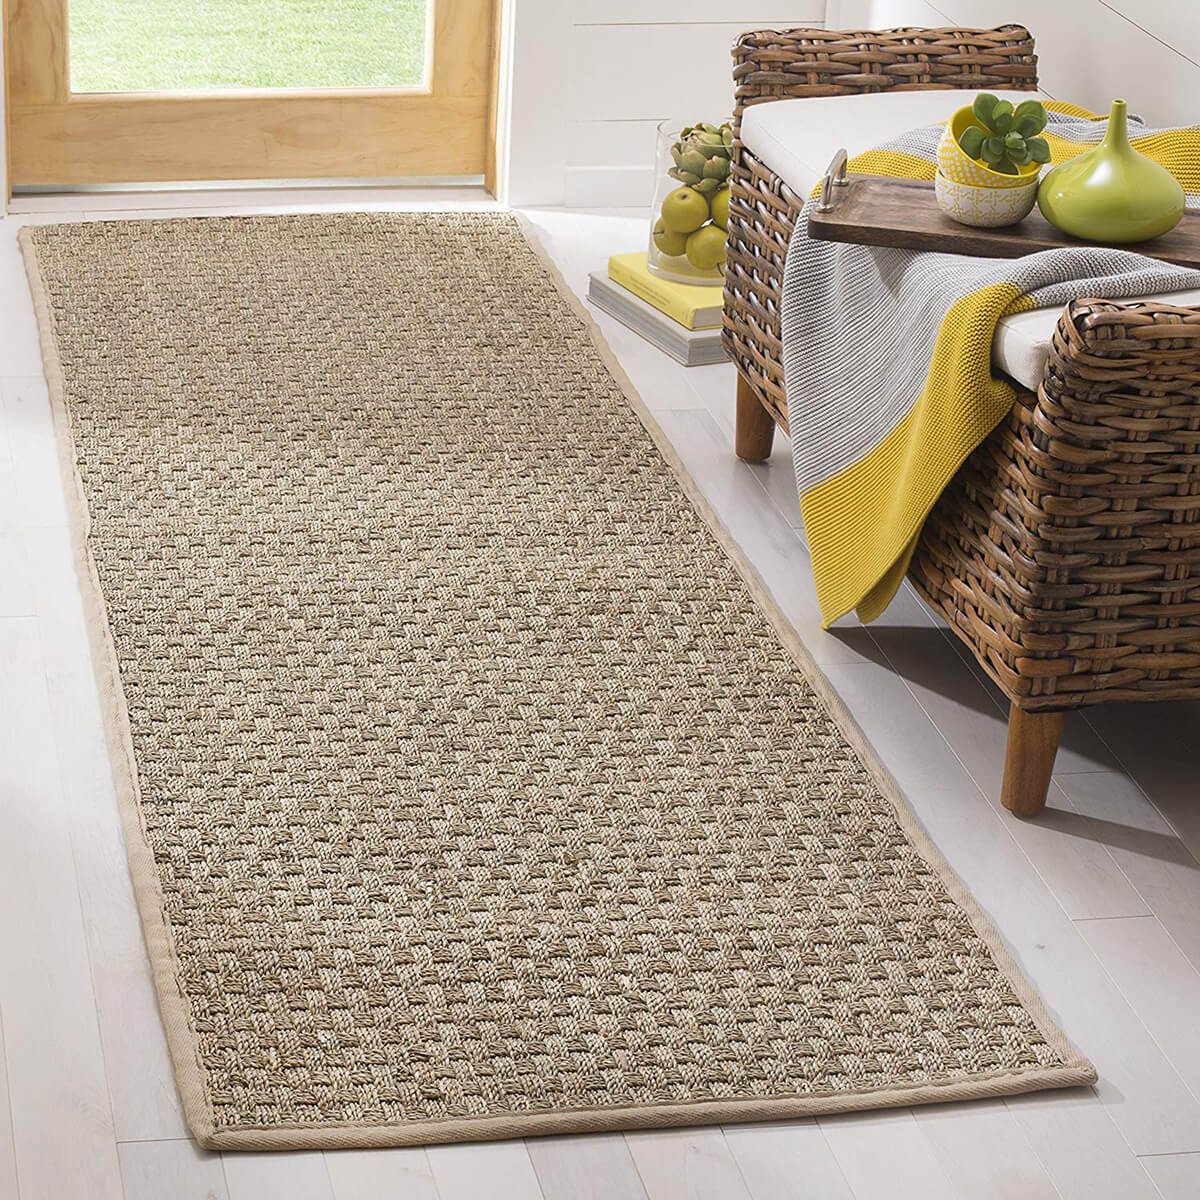 Natural Fiber Woven Patterned Runner